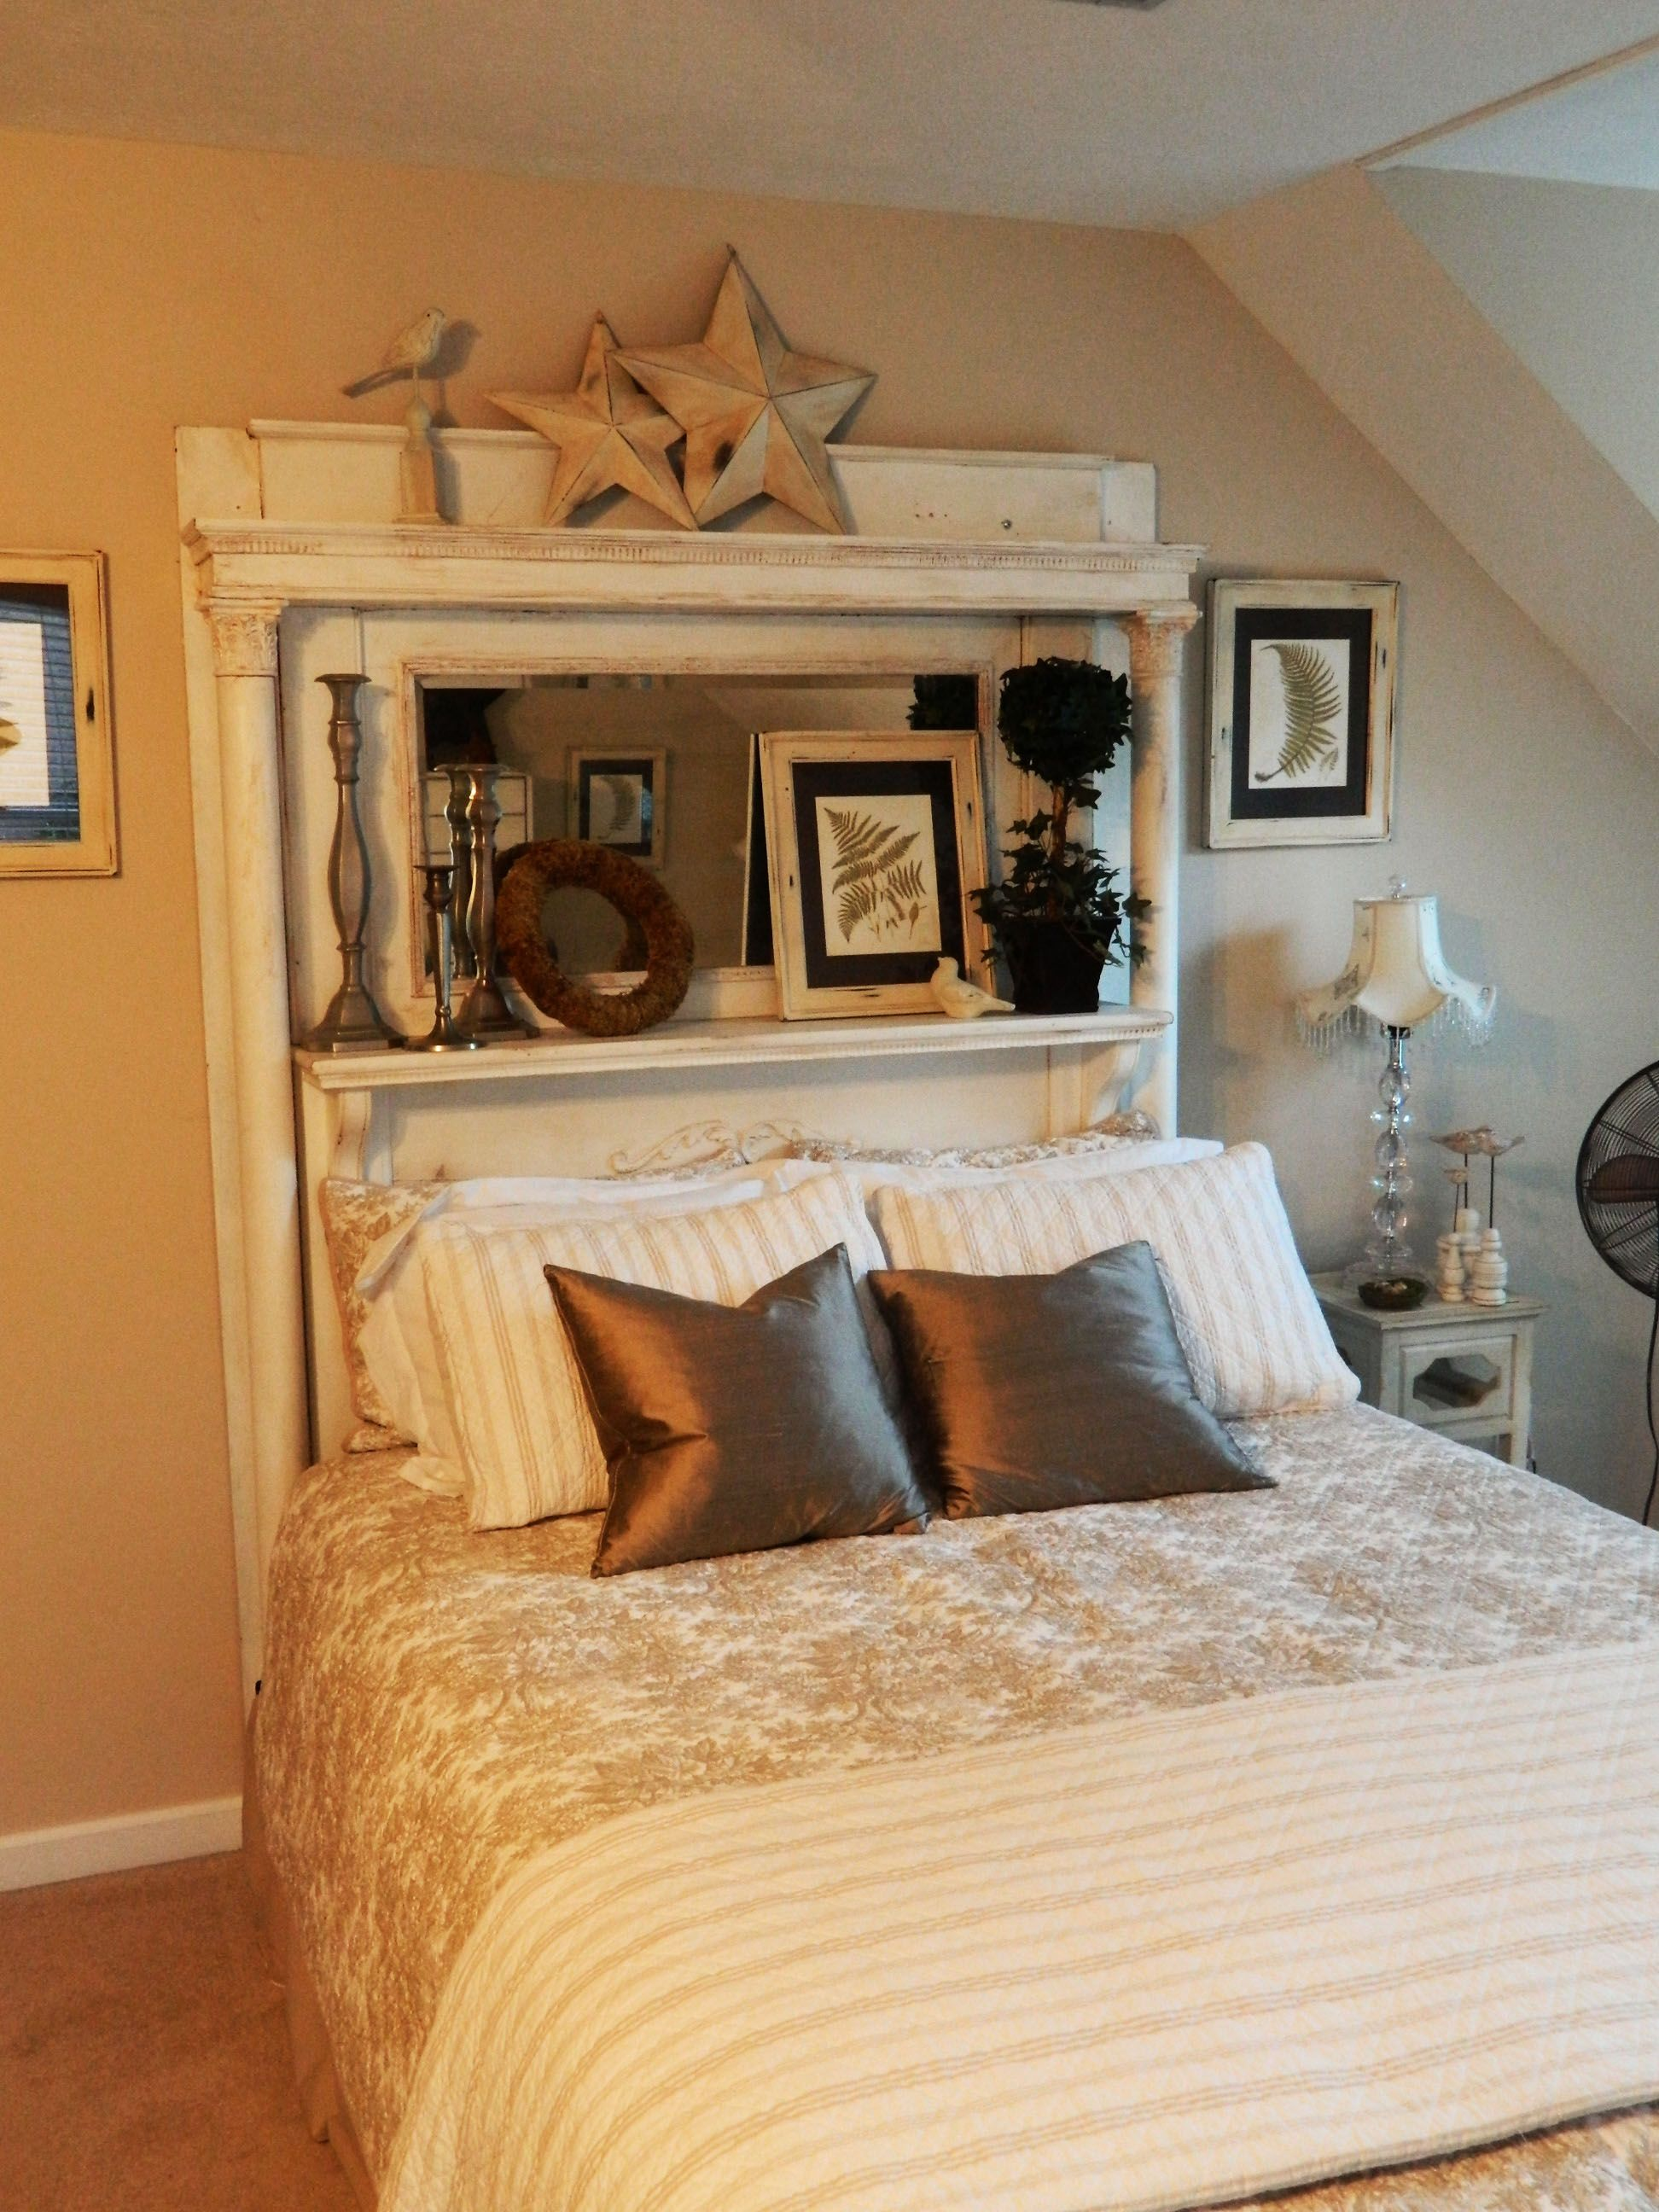 Guest bed headboard using white antique fireplace mantel from Dadus